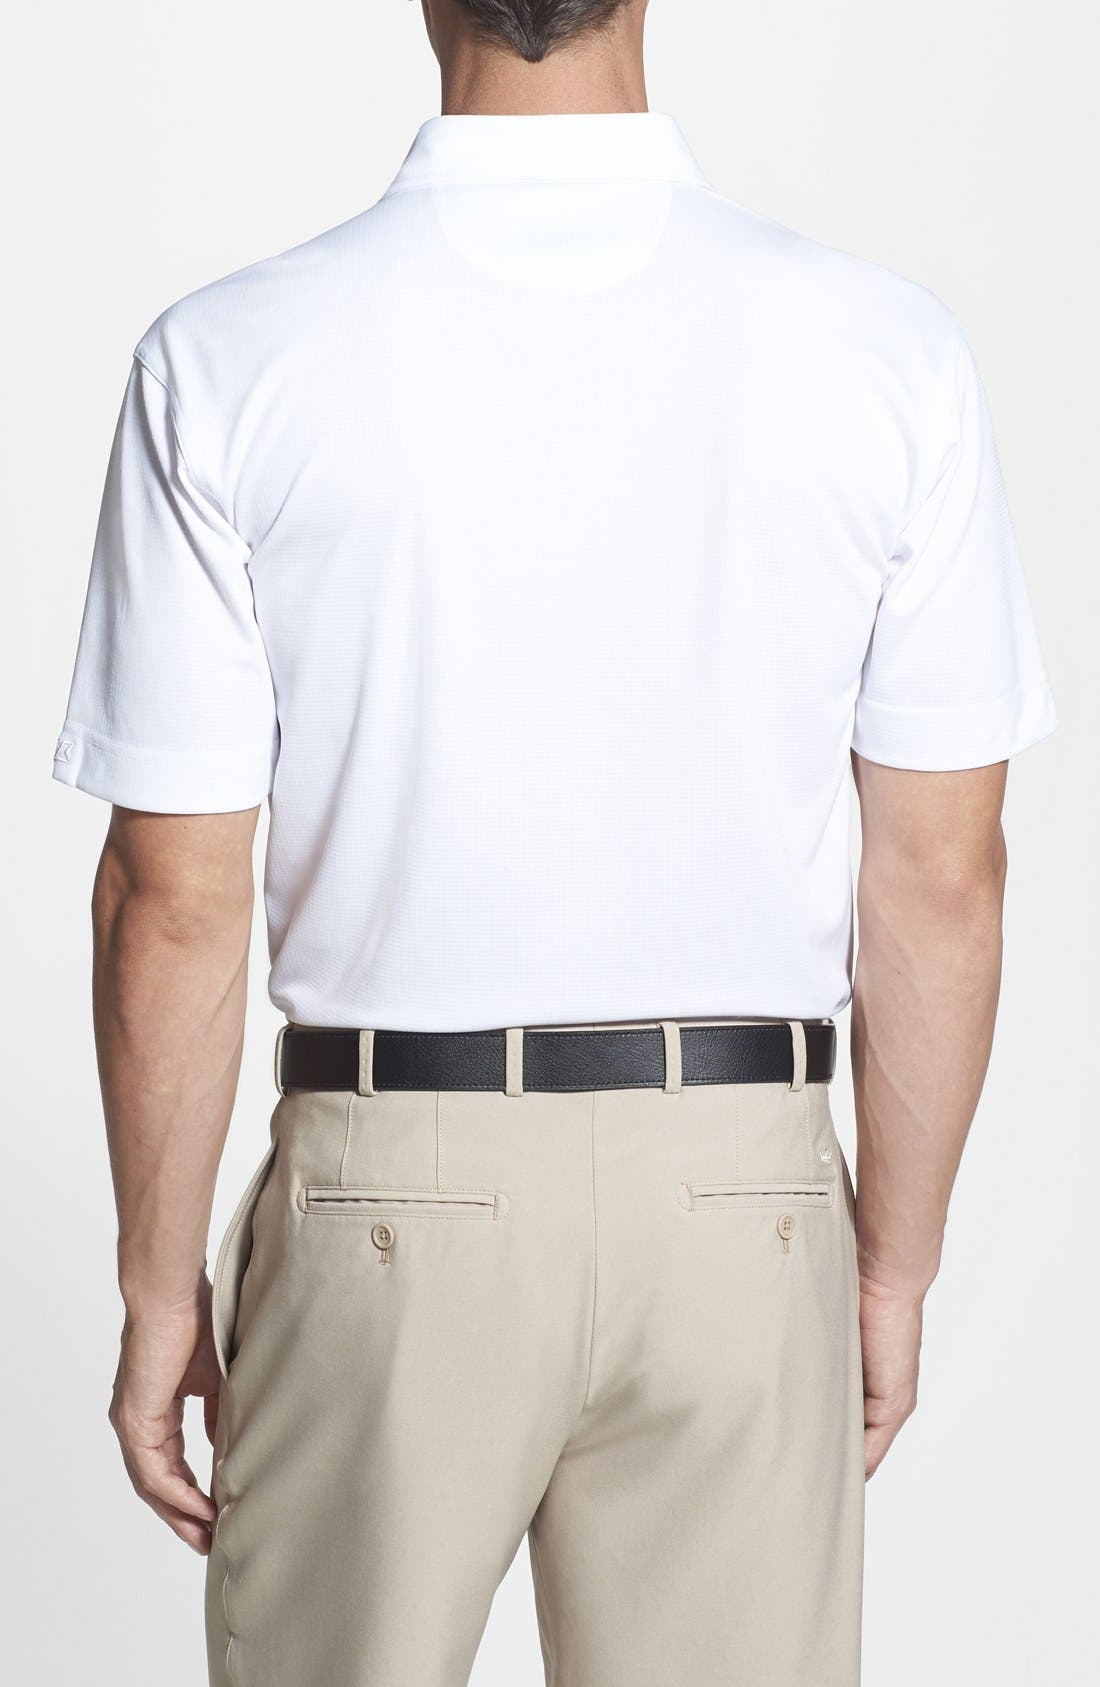 'New England Patriots - Genre' DryTec Moisture Wicking Polo,                             Alternate thumbnail 5, color,                             100